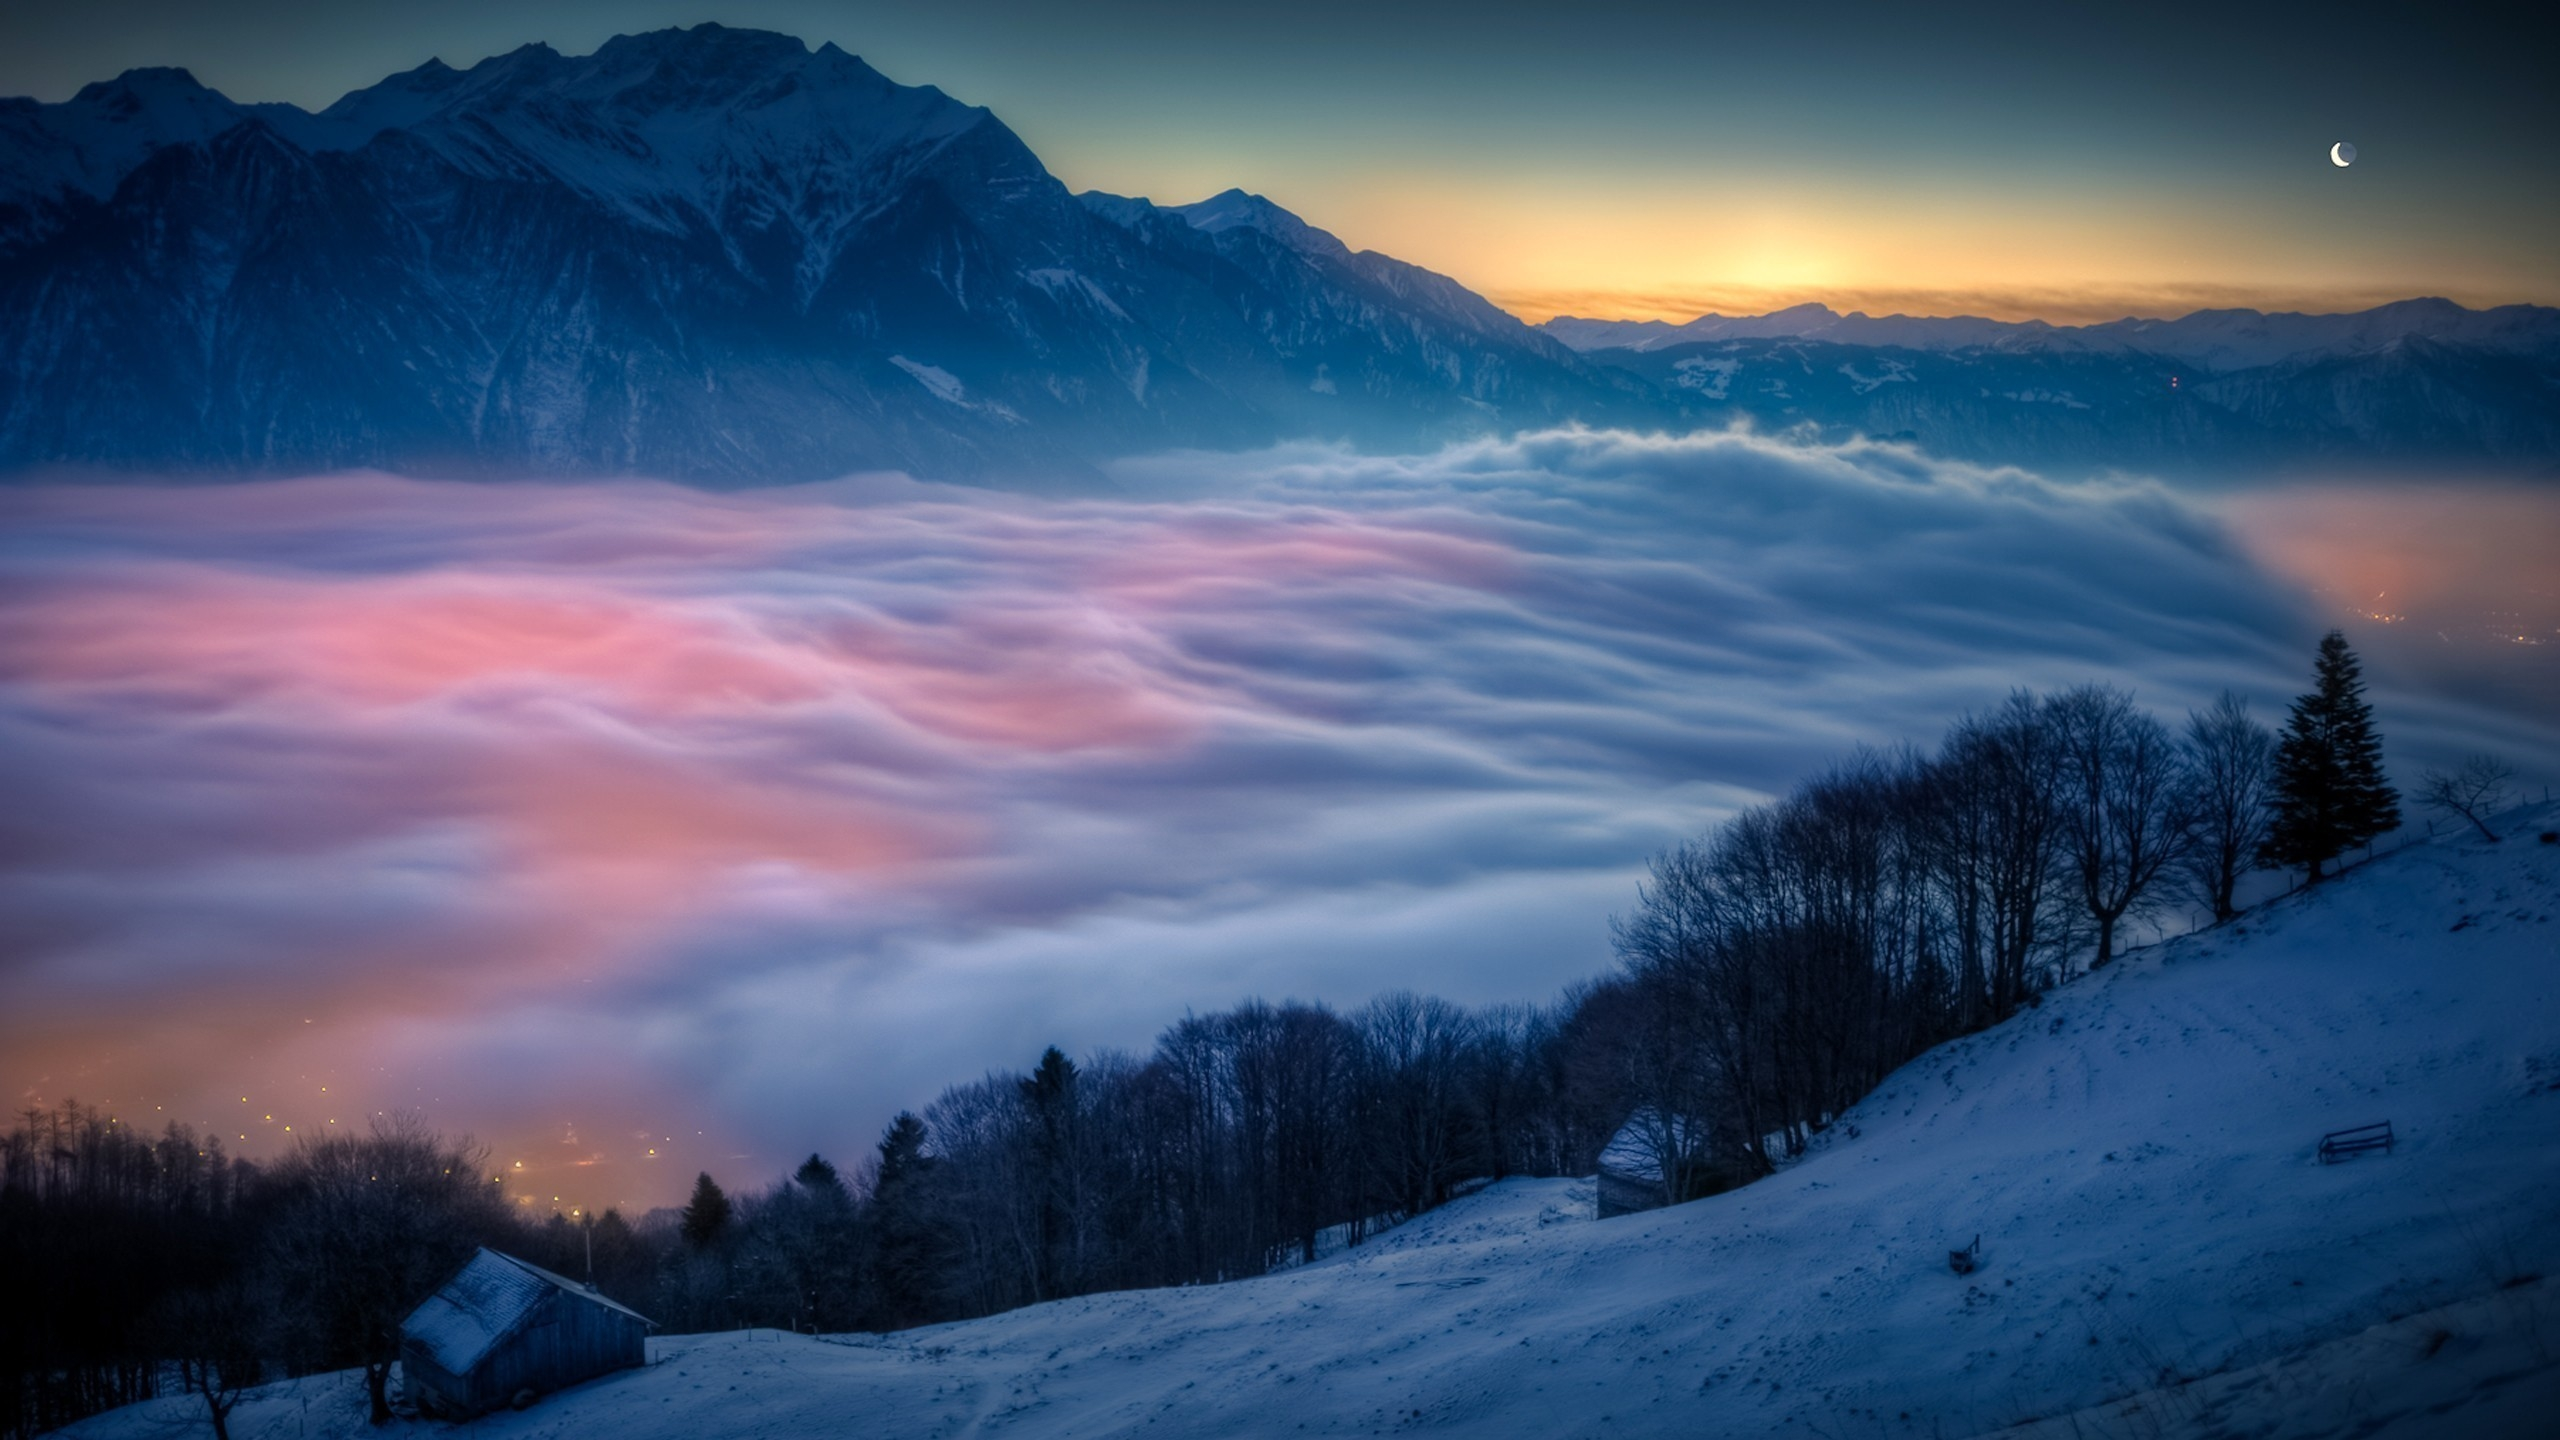 General 2560x1440 clouds mountains winter snow sunset Moon Switzerland cold ice